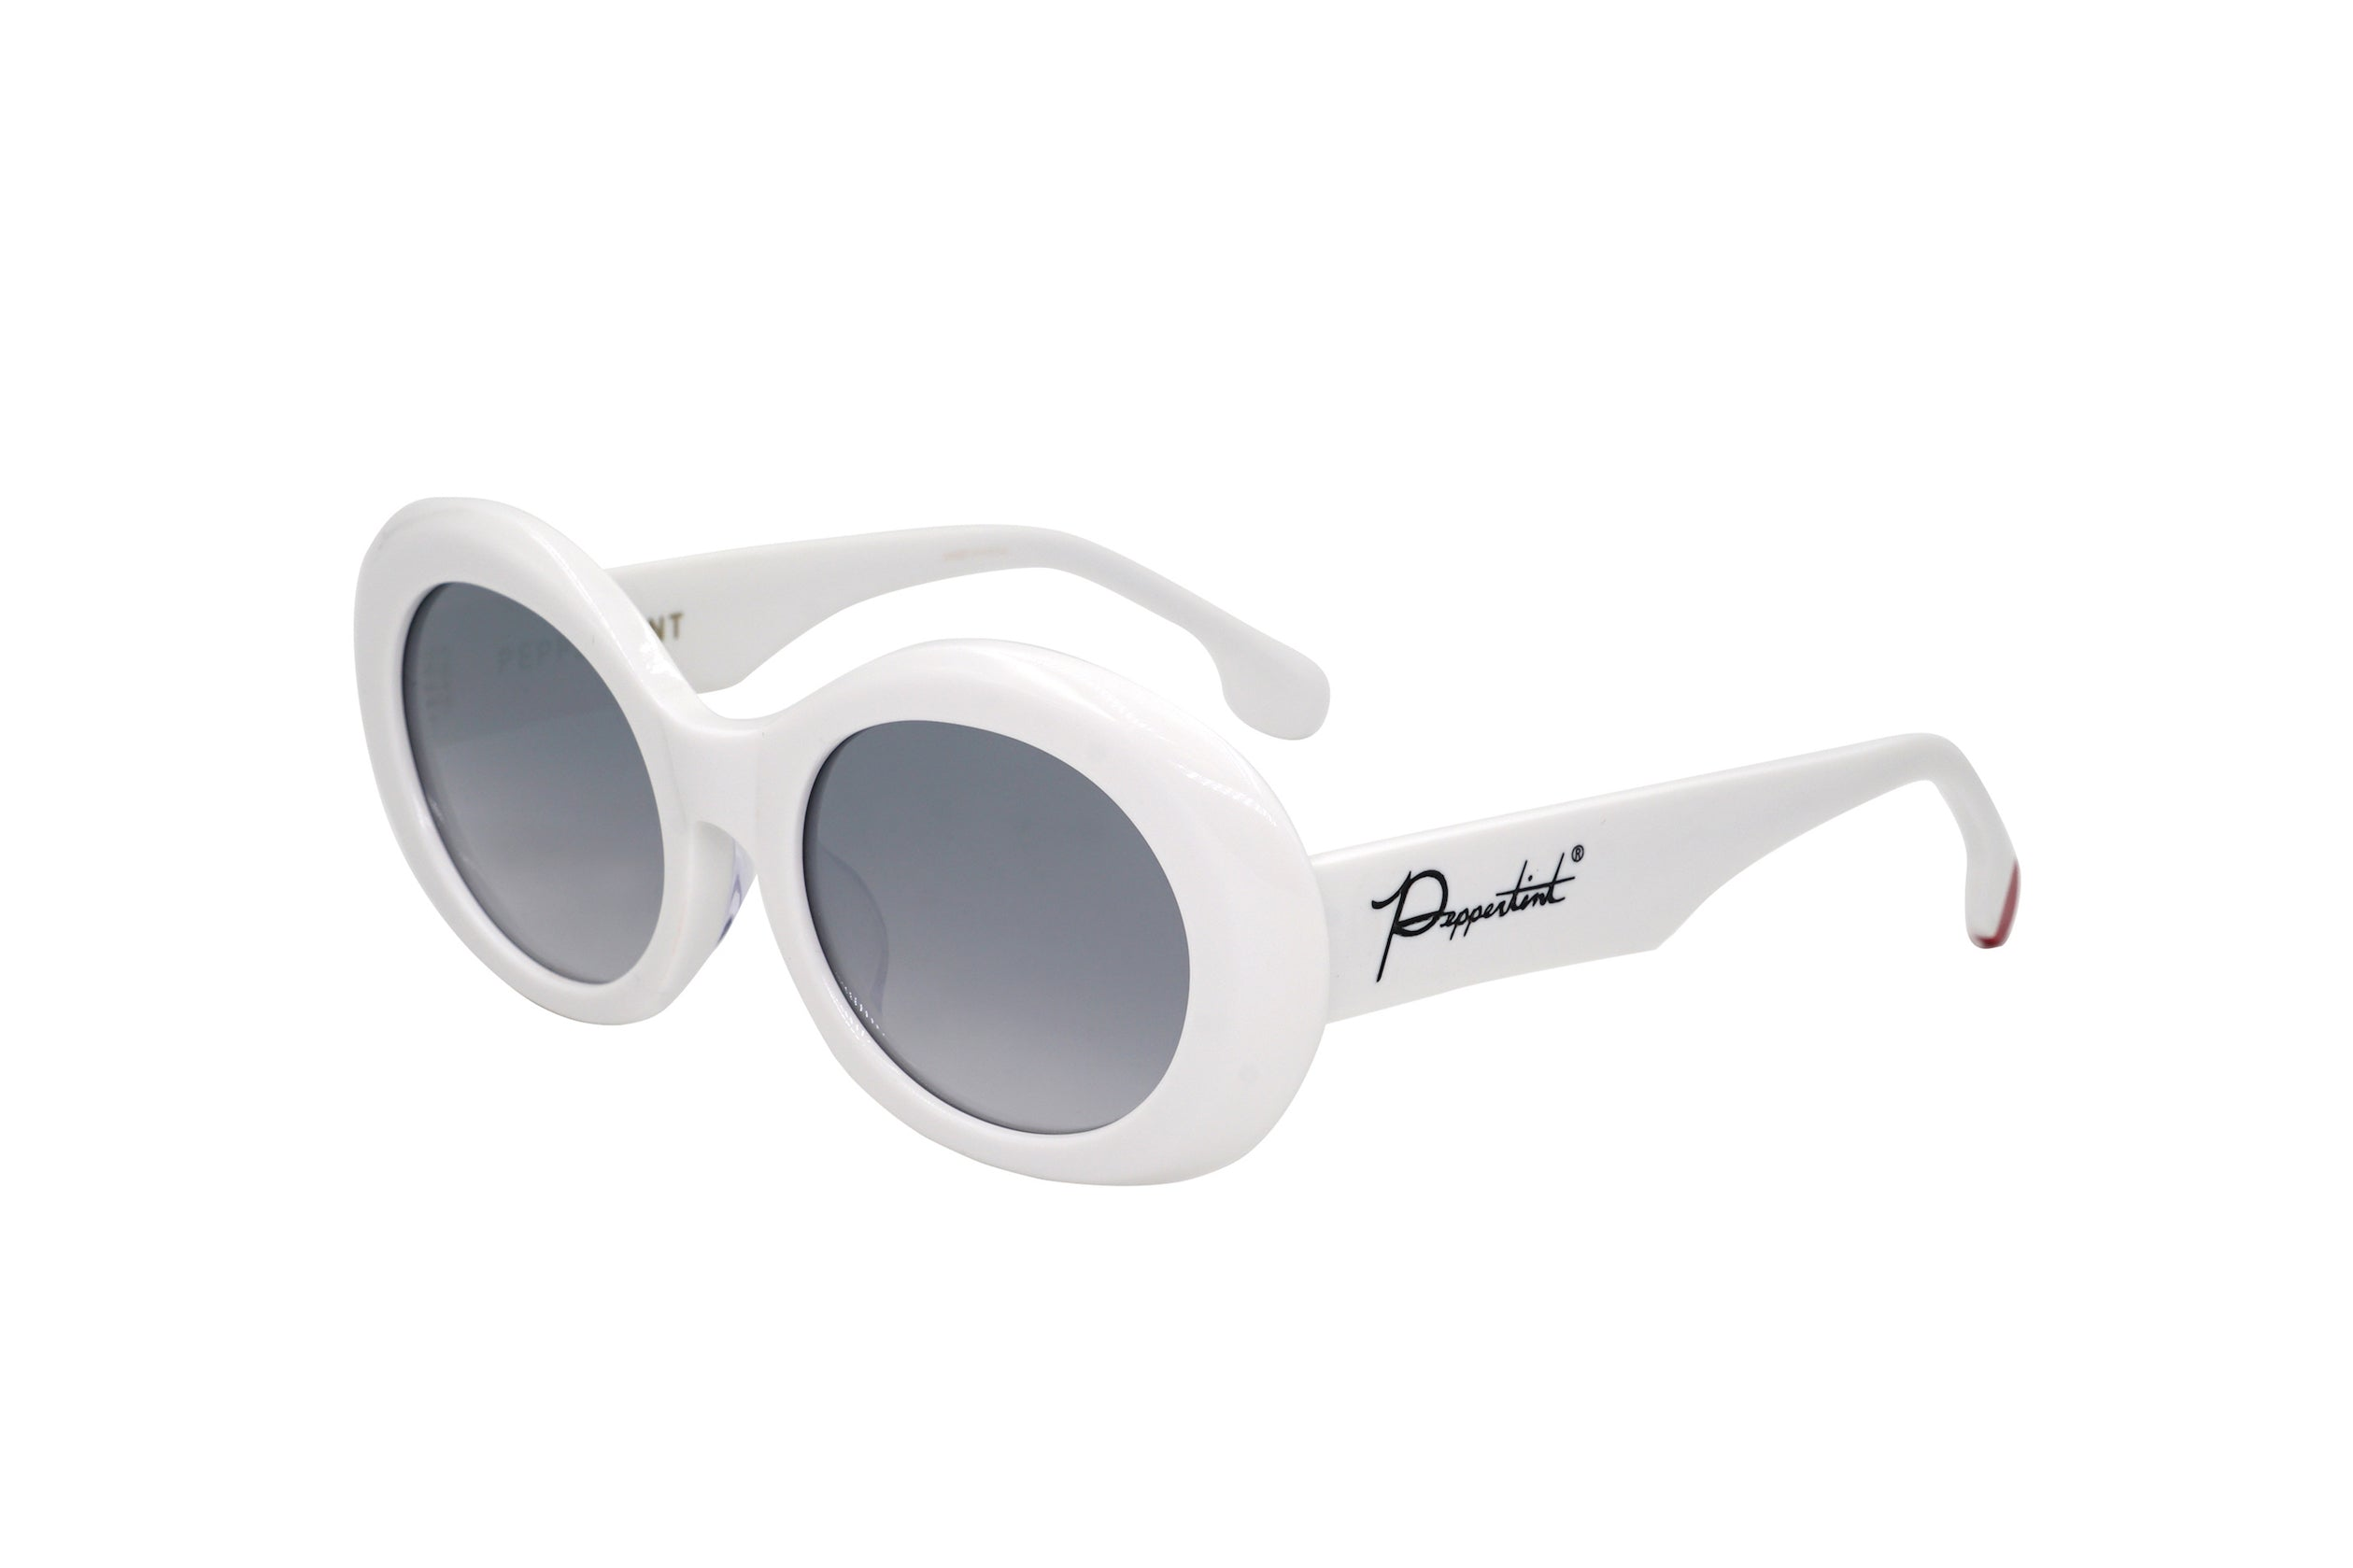 Crenshaw in White - Peppertint - Designer sunglasses